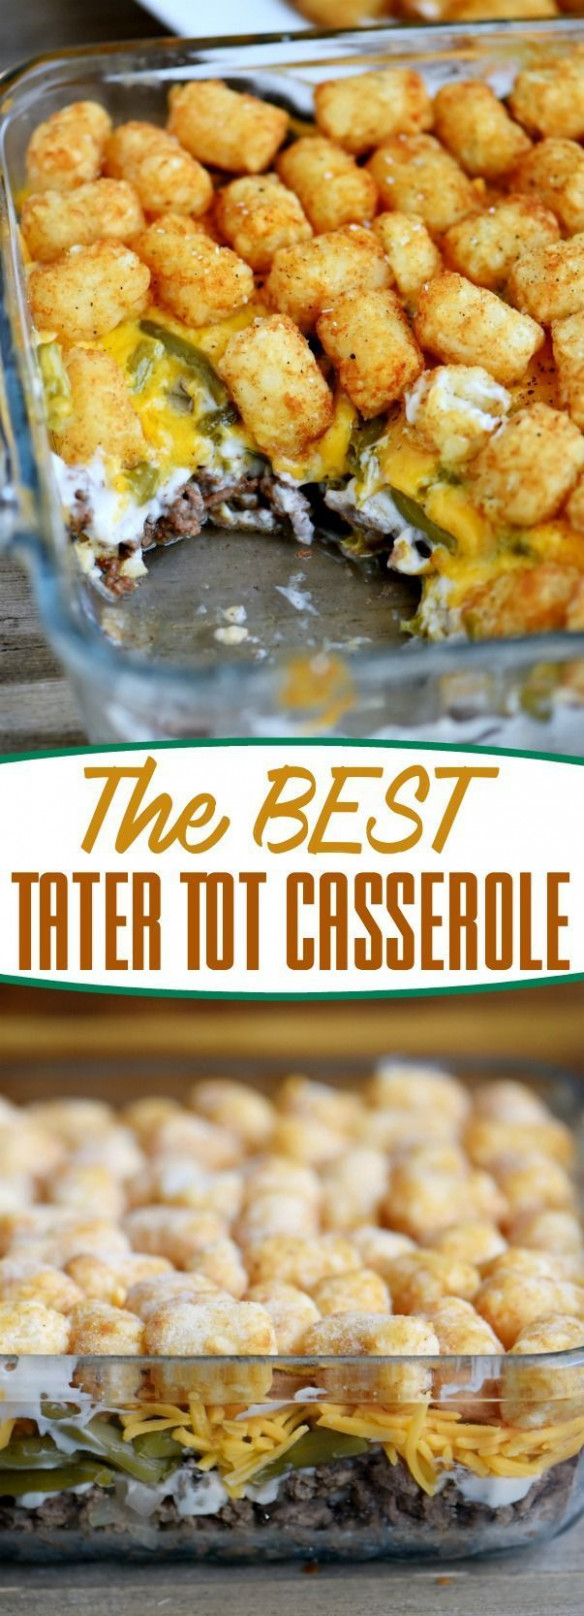 The-BEST-Tater-Tot-Casserole- | Food: Dinner | Best tater ...